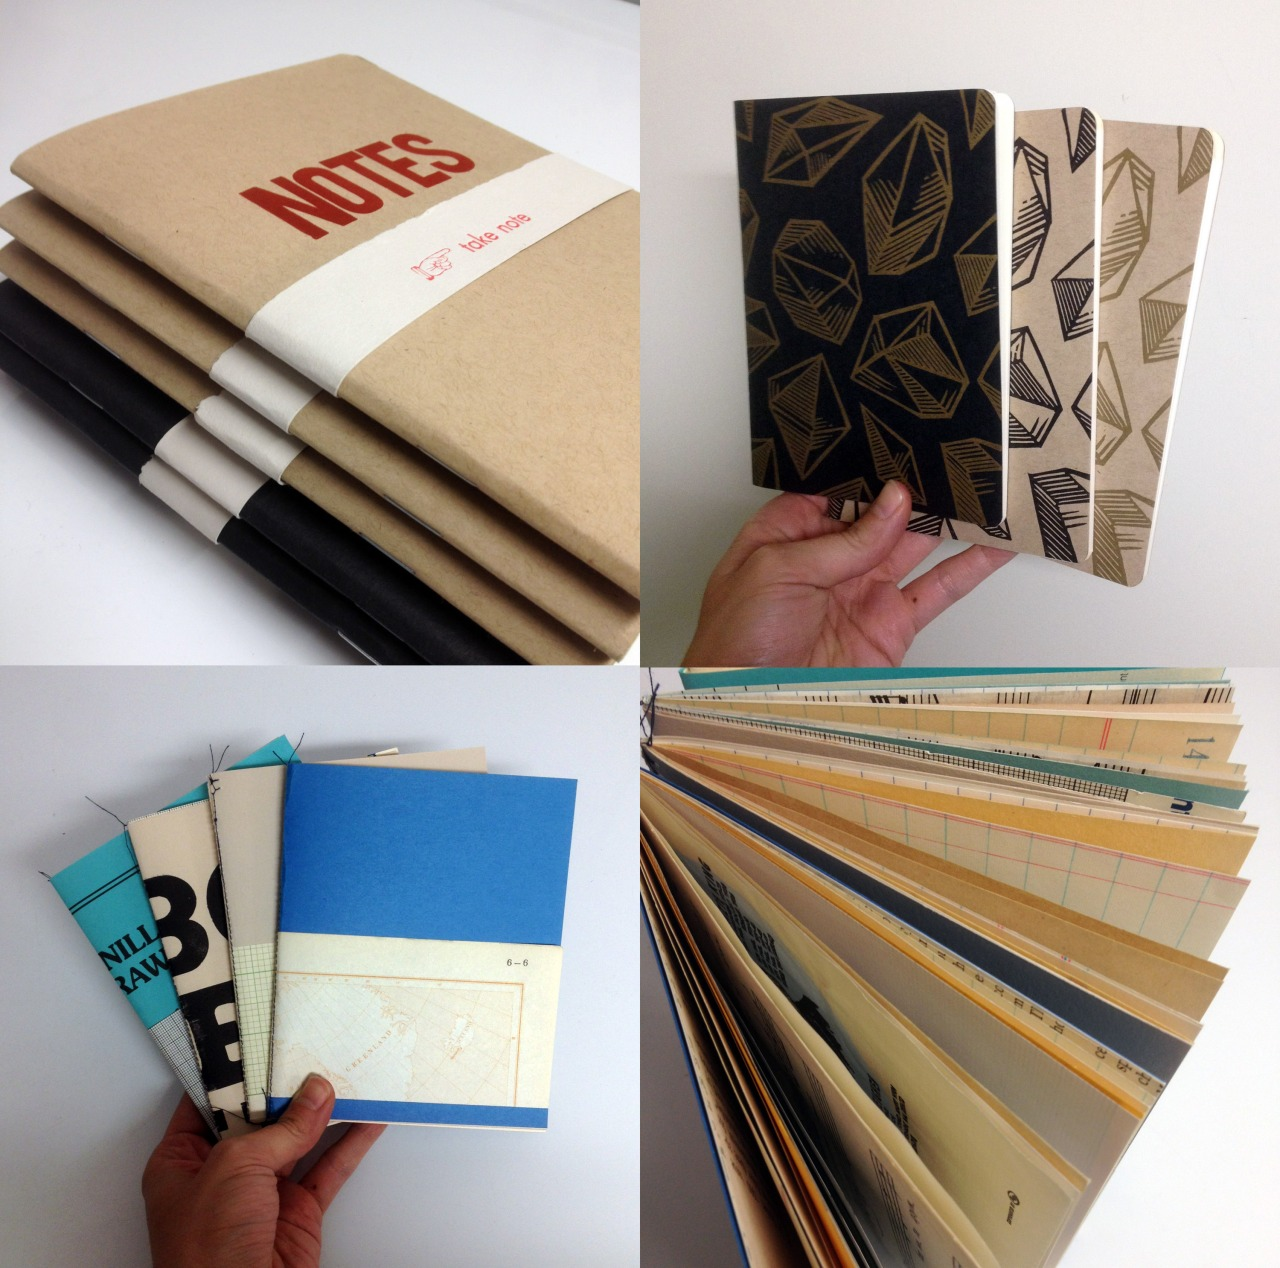 "allsortspress :     Still waiting to get into the new studio, but here's a bunch of notebooks in the meantime - large red on kraft/black on black ""notes"", small gem prints, and found papers. PM me at sara@allsortspress.com for details and I'll stick one in the mail for you!     These look wonderful!"